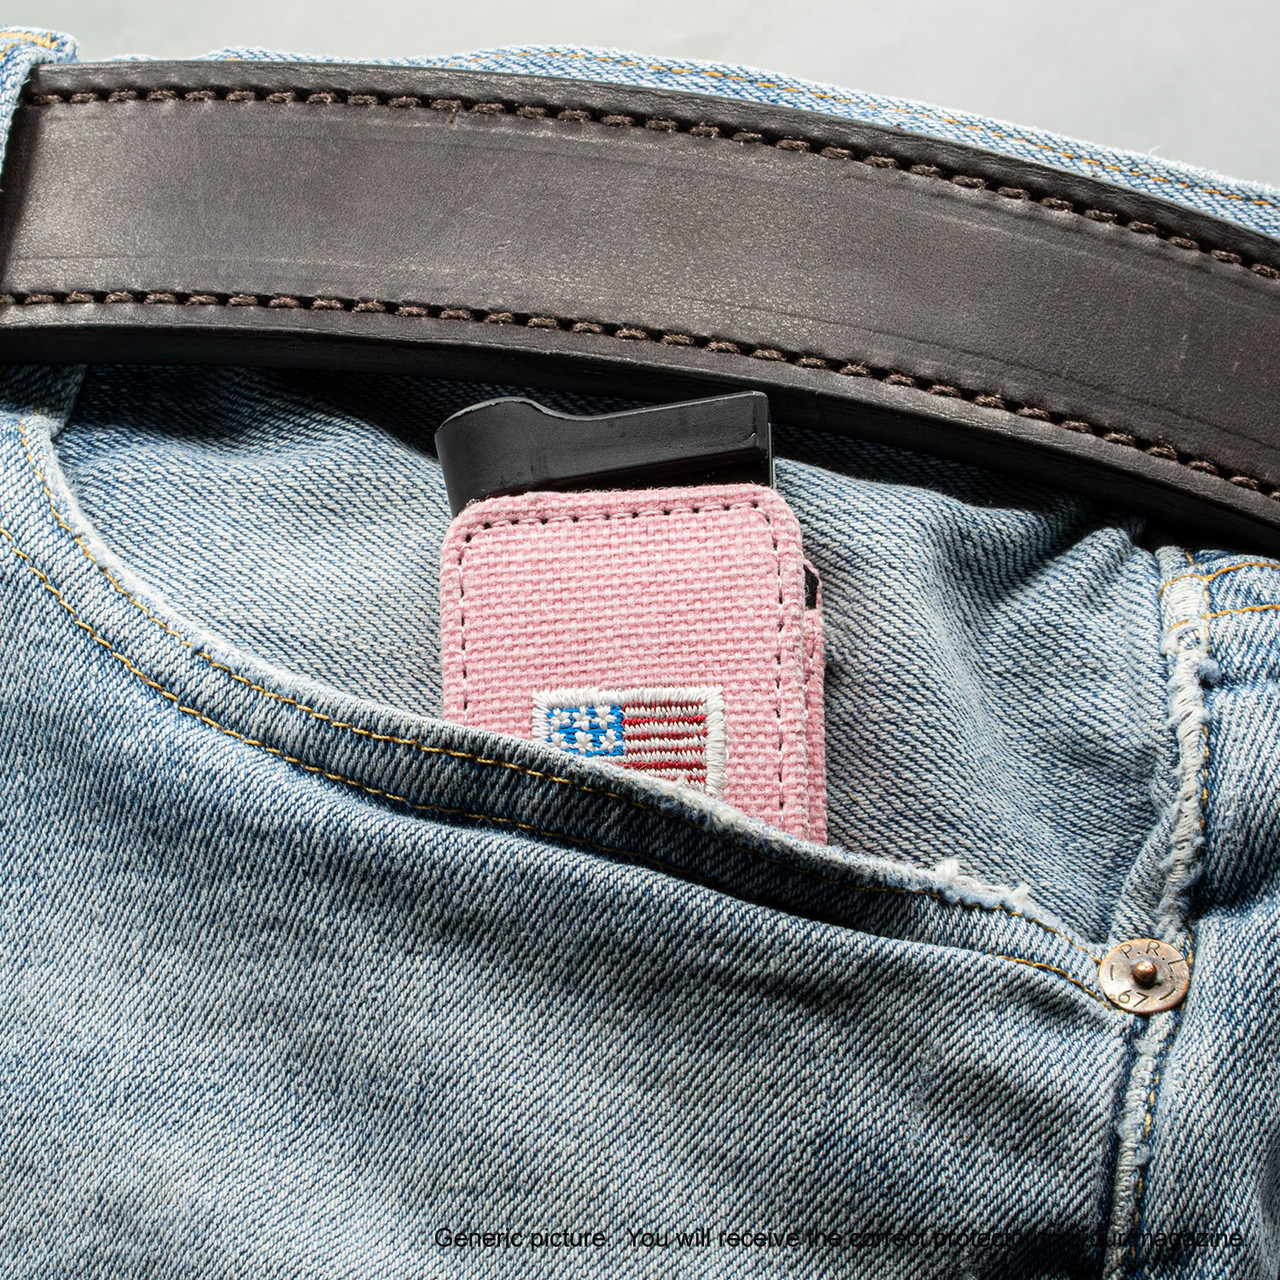 Beretta APX Carry Holsters Pink Canvas Flag Magazine Pocket Protector